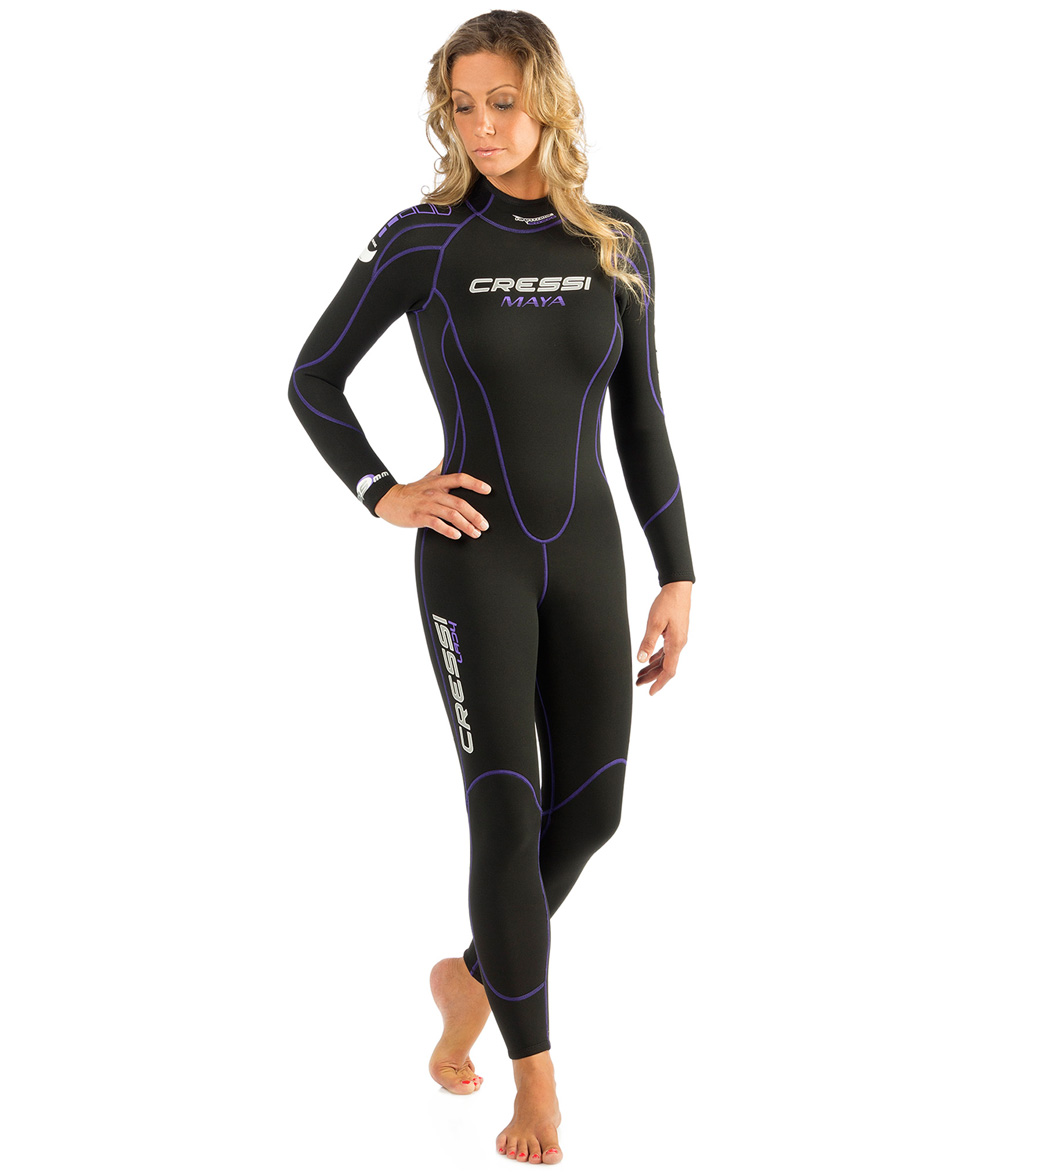 22367075f8 Cressi Women s 2.5mm Maya Wetsuit at SwimOutlet.com - Free Shipping